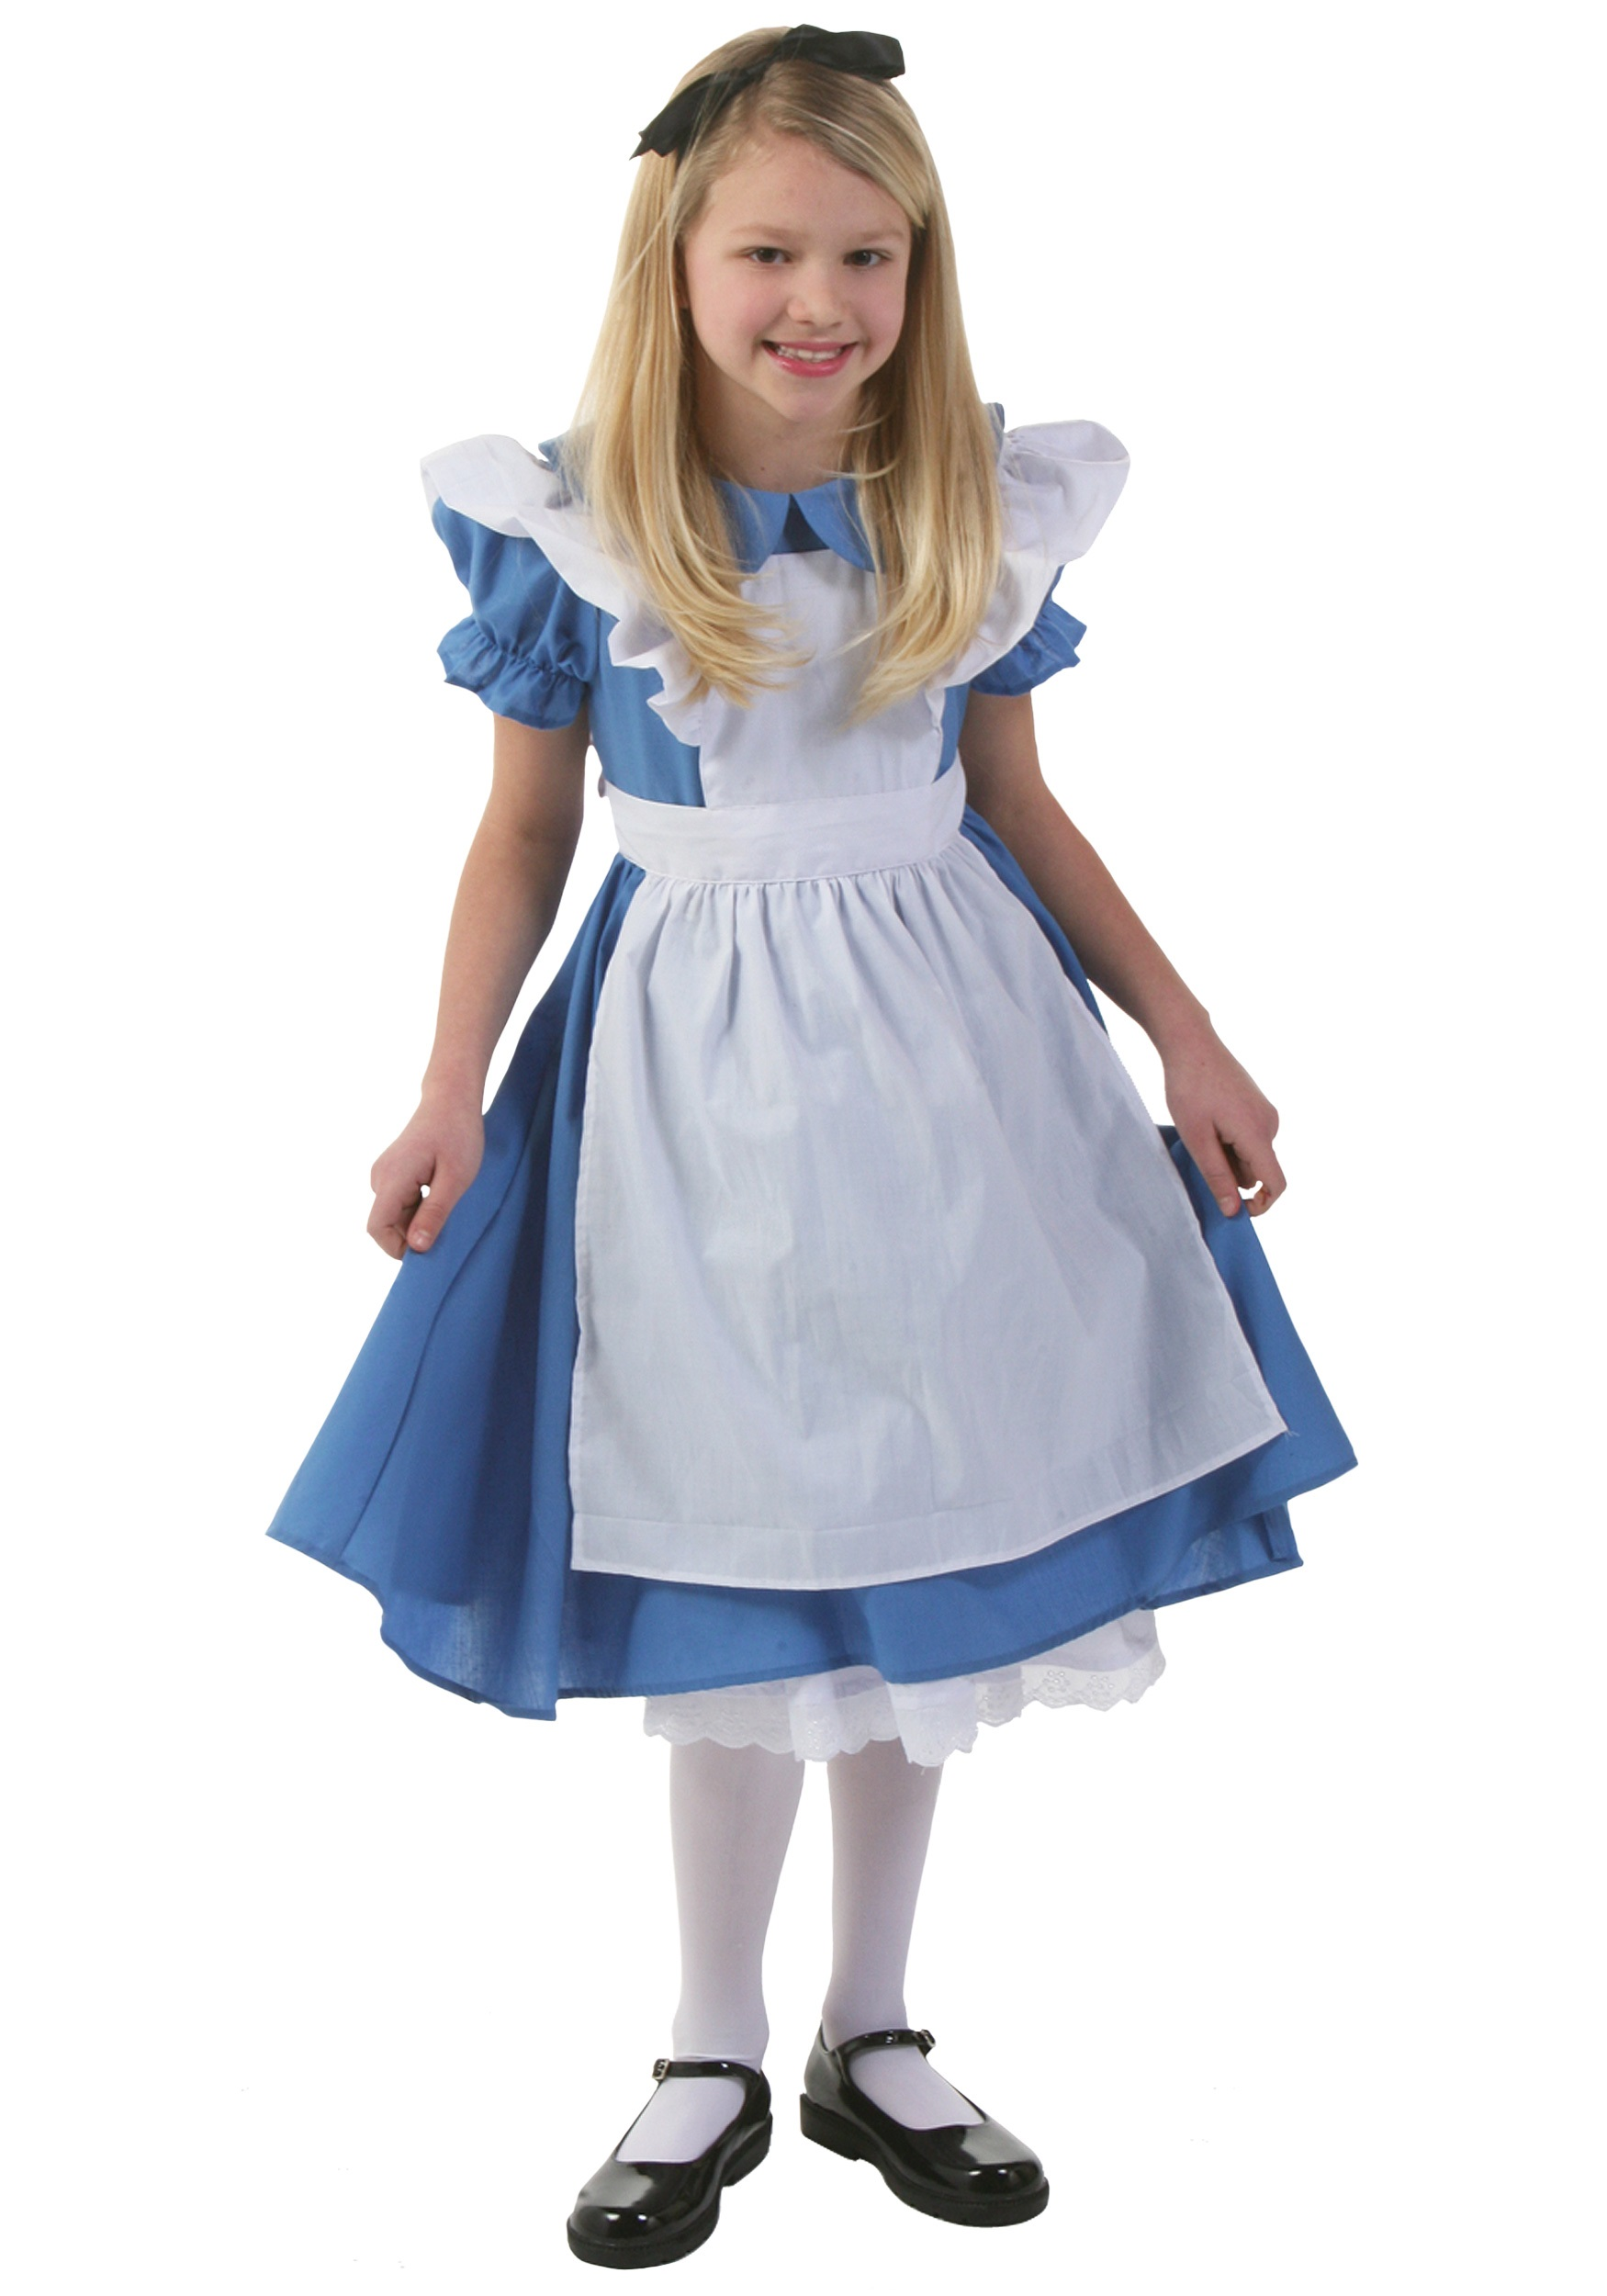 Girls Halloween Costumes Finding a costume for your girls can be a tiring experience. Kids love their themed birthday parties and with Halloween only a few months away, it's best to beat the rush than to desperately look last minute!